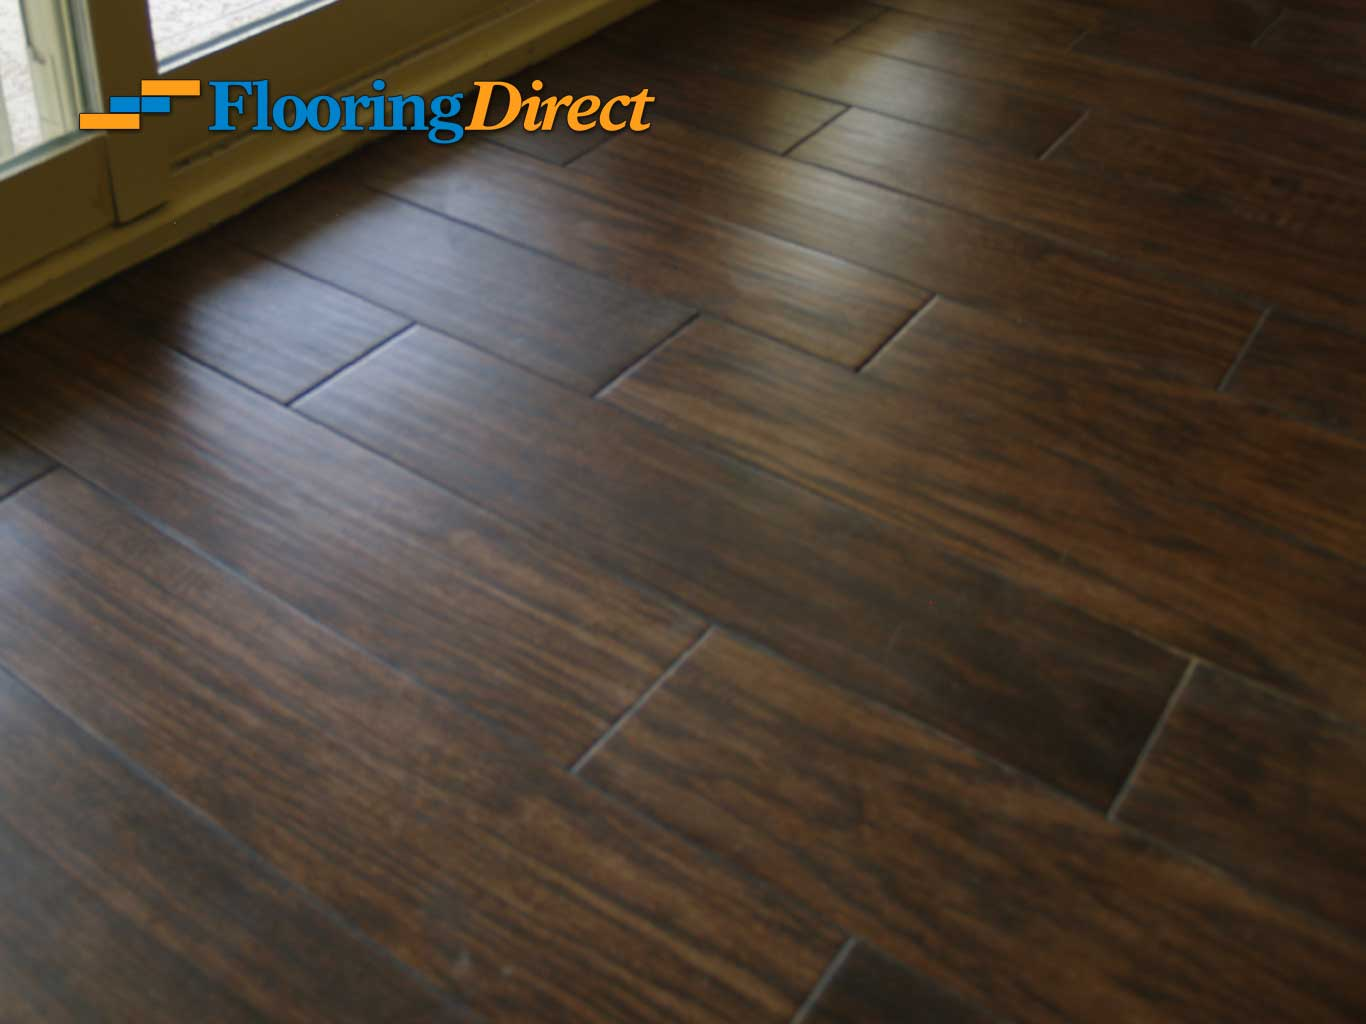 Wood Look Tile Flooring Serving All Of Dfw Direct